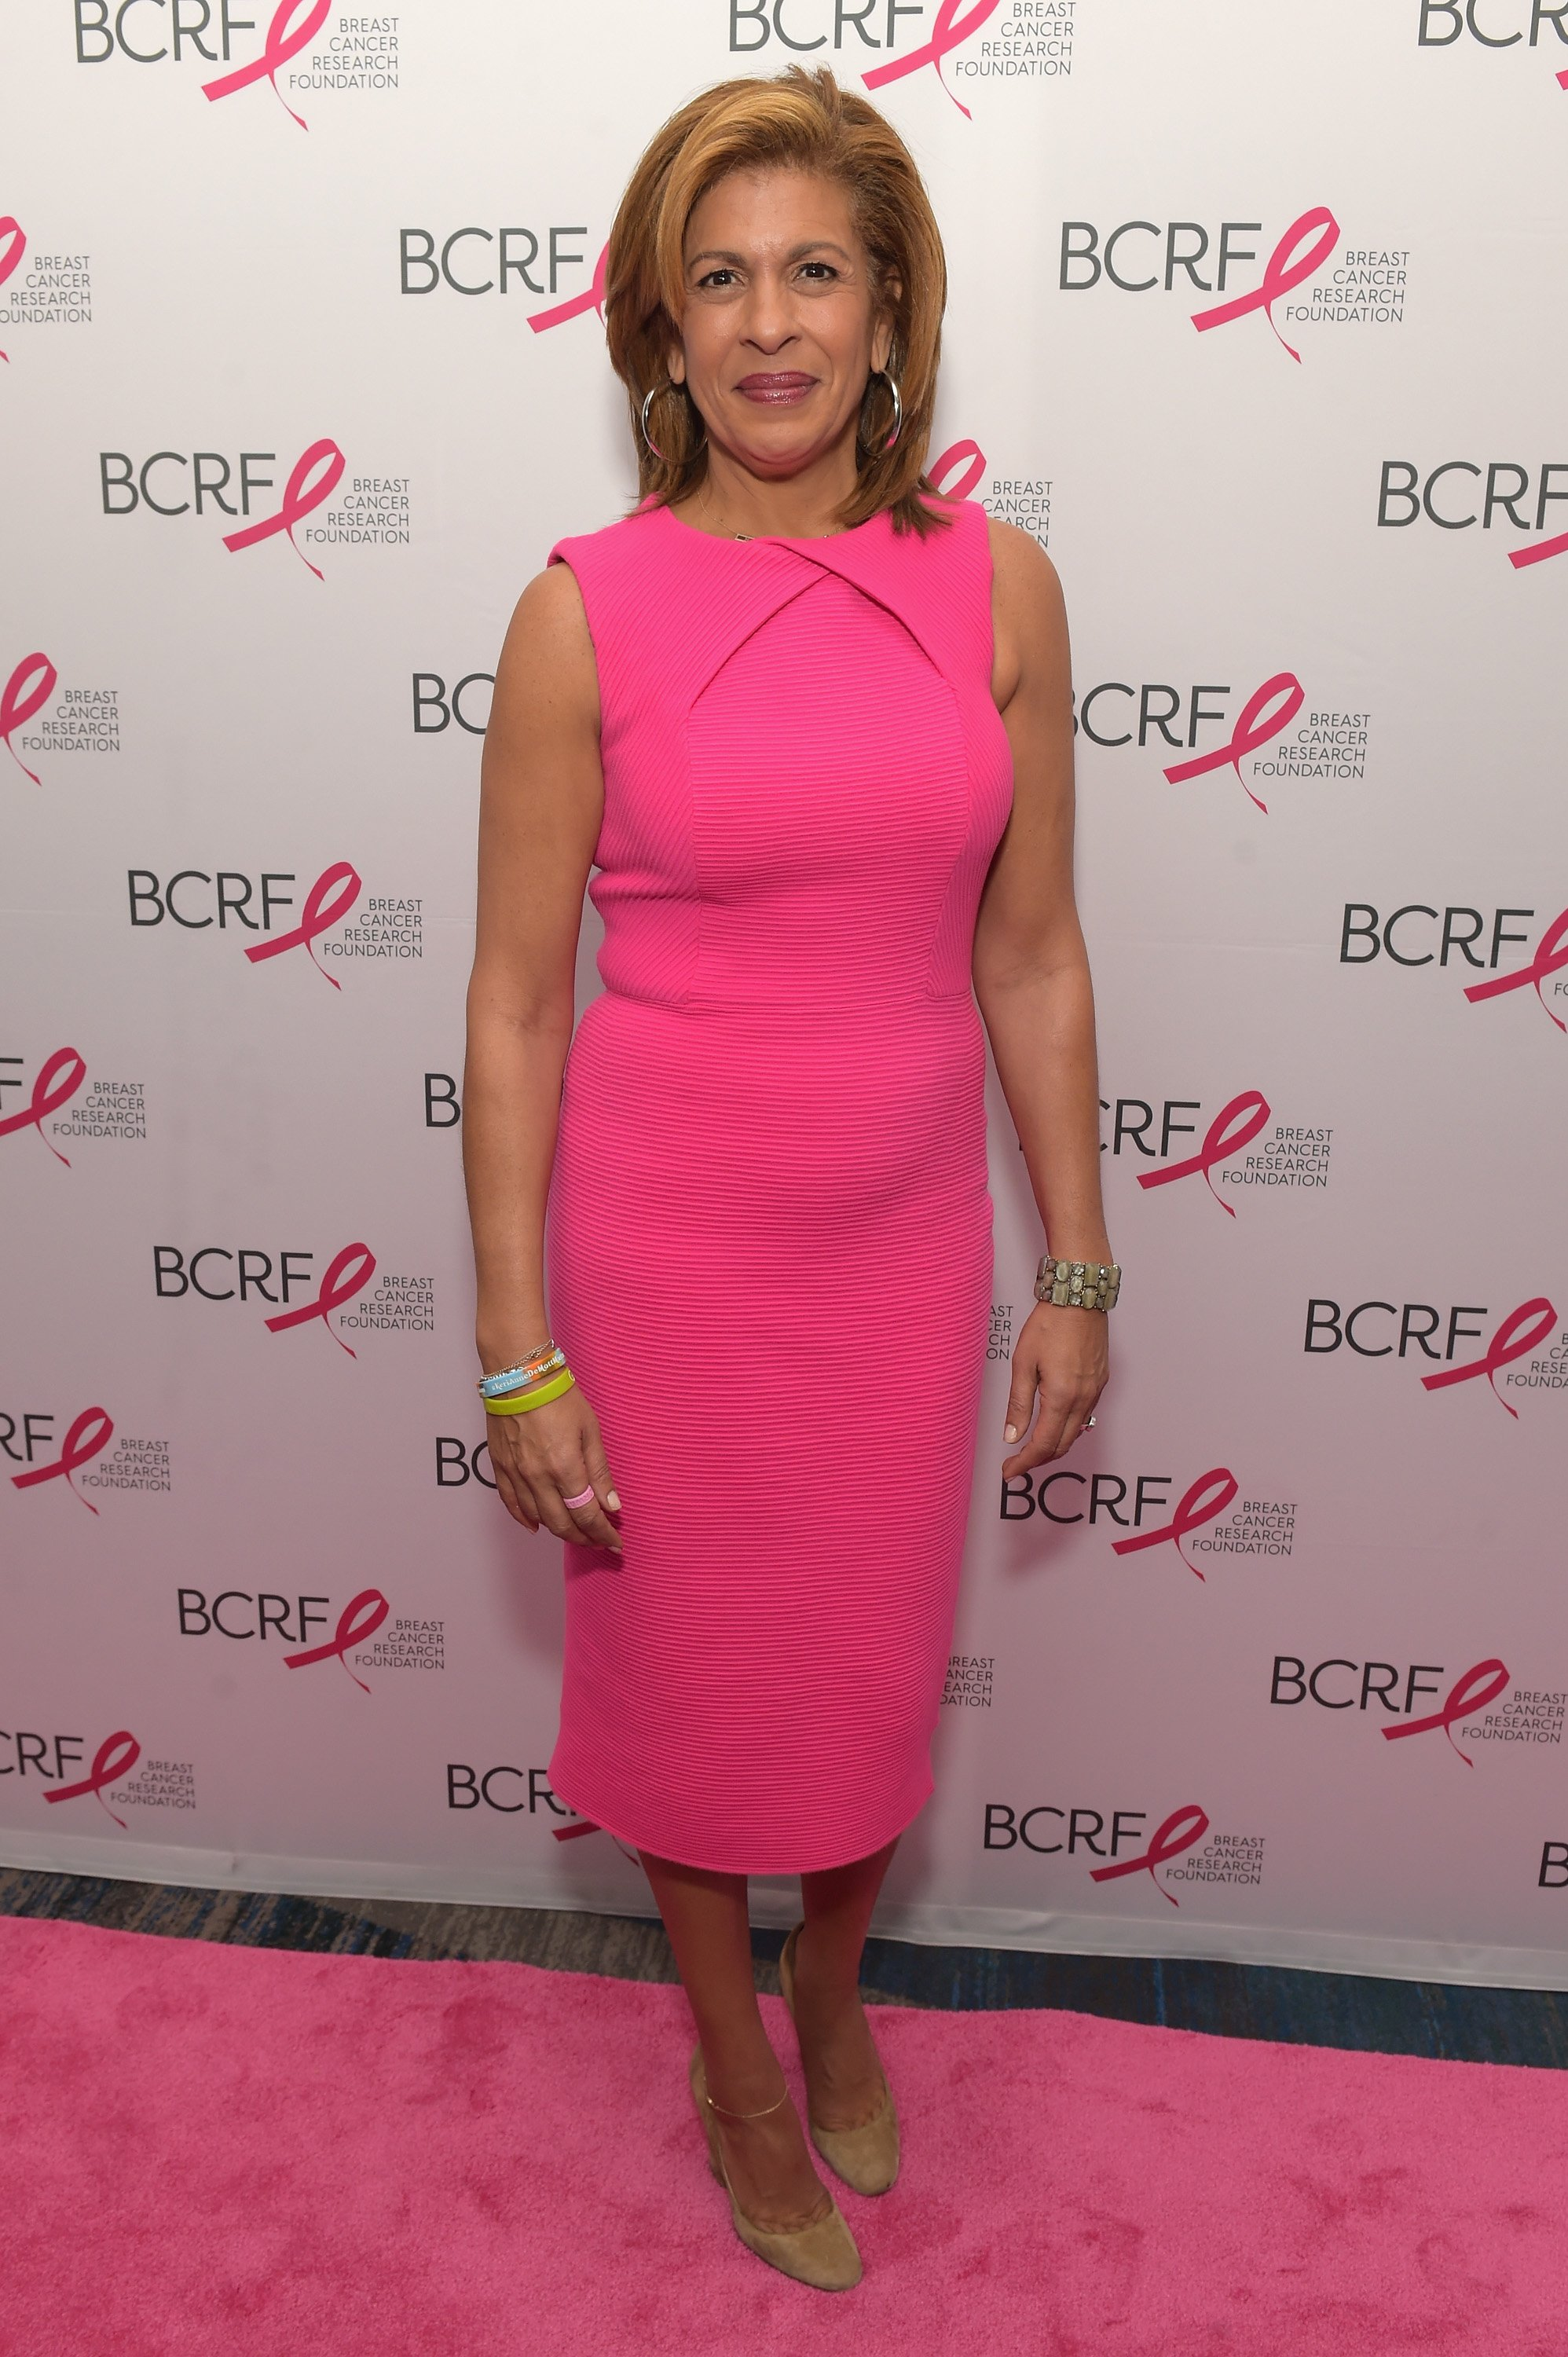 Hoda Kotb attends a pink carpet event in New York City on October 19, 2017 | Source: Getty Images/Global Images Ukraine